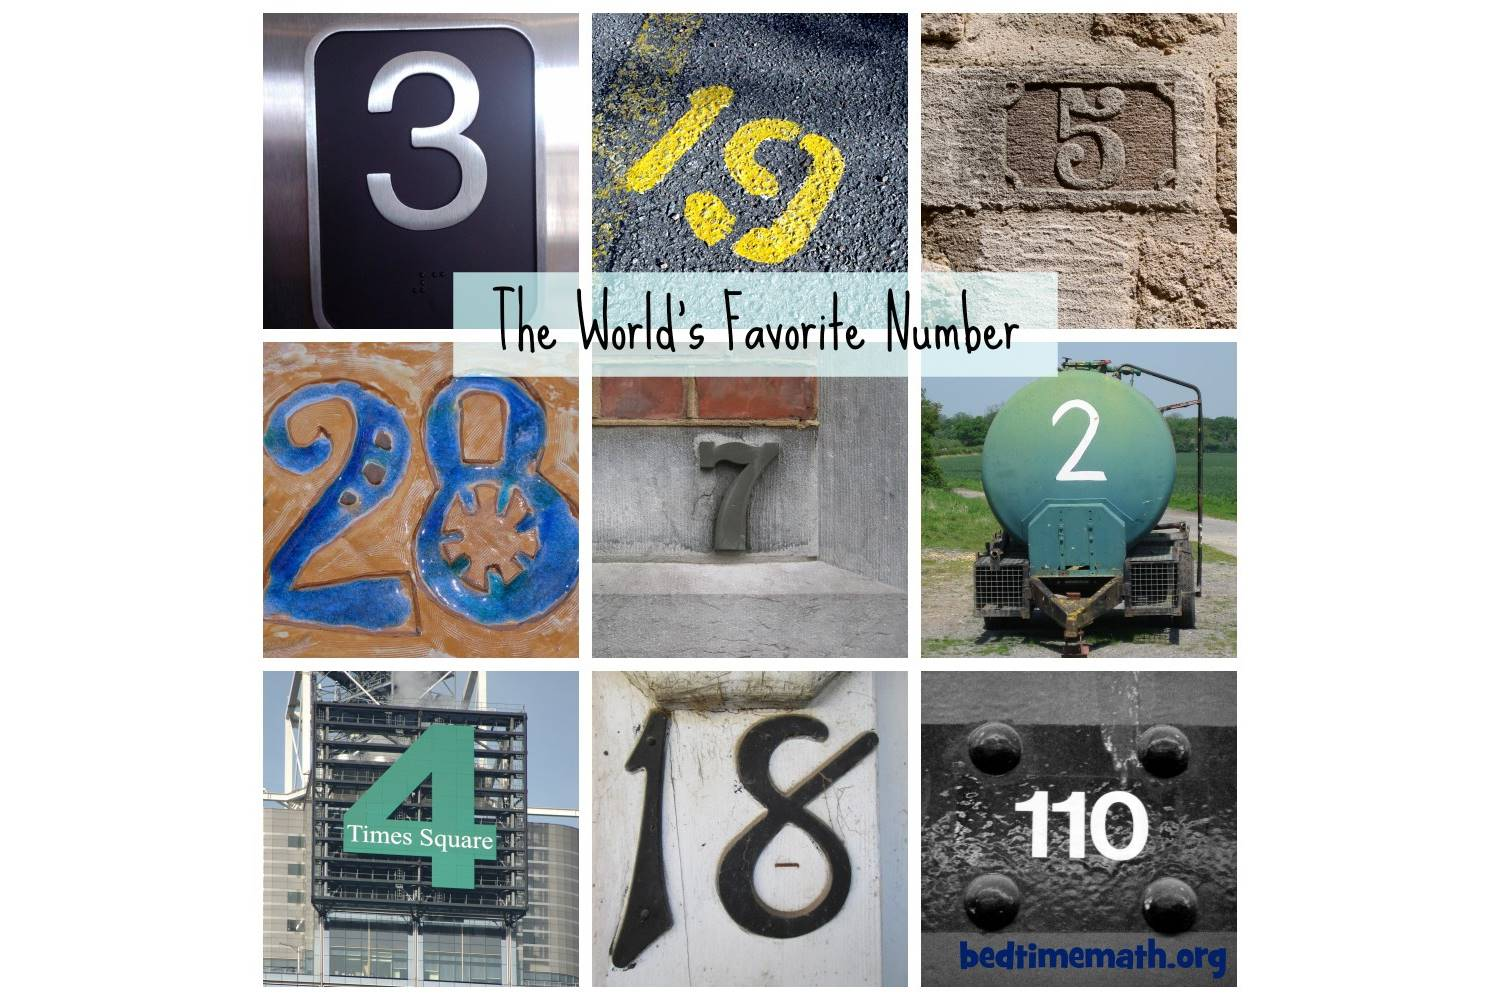 The World's Favorite Number